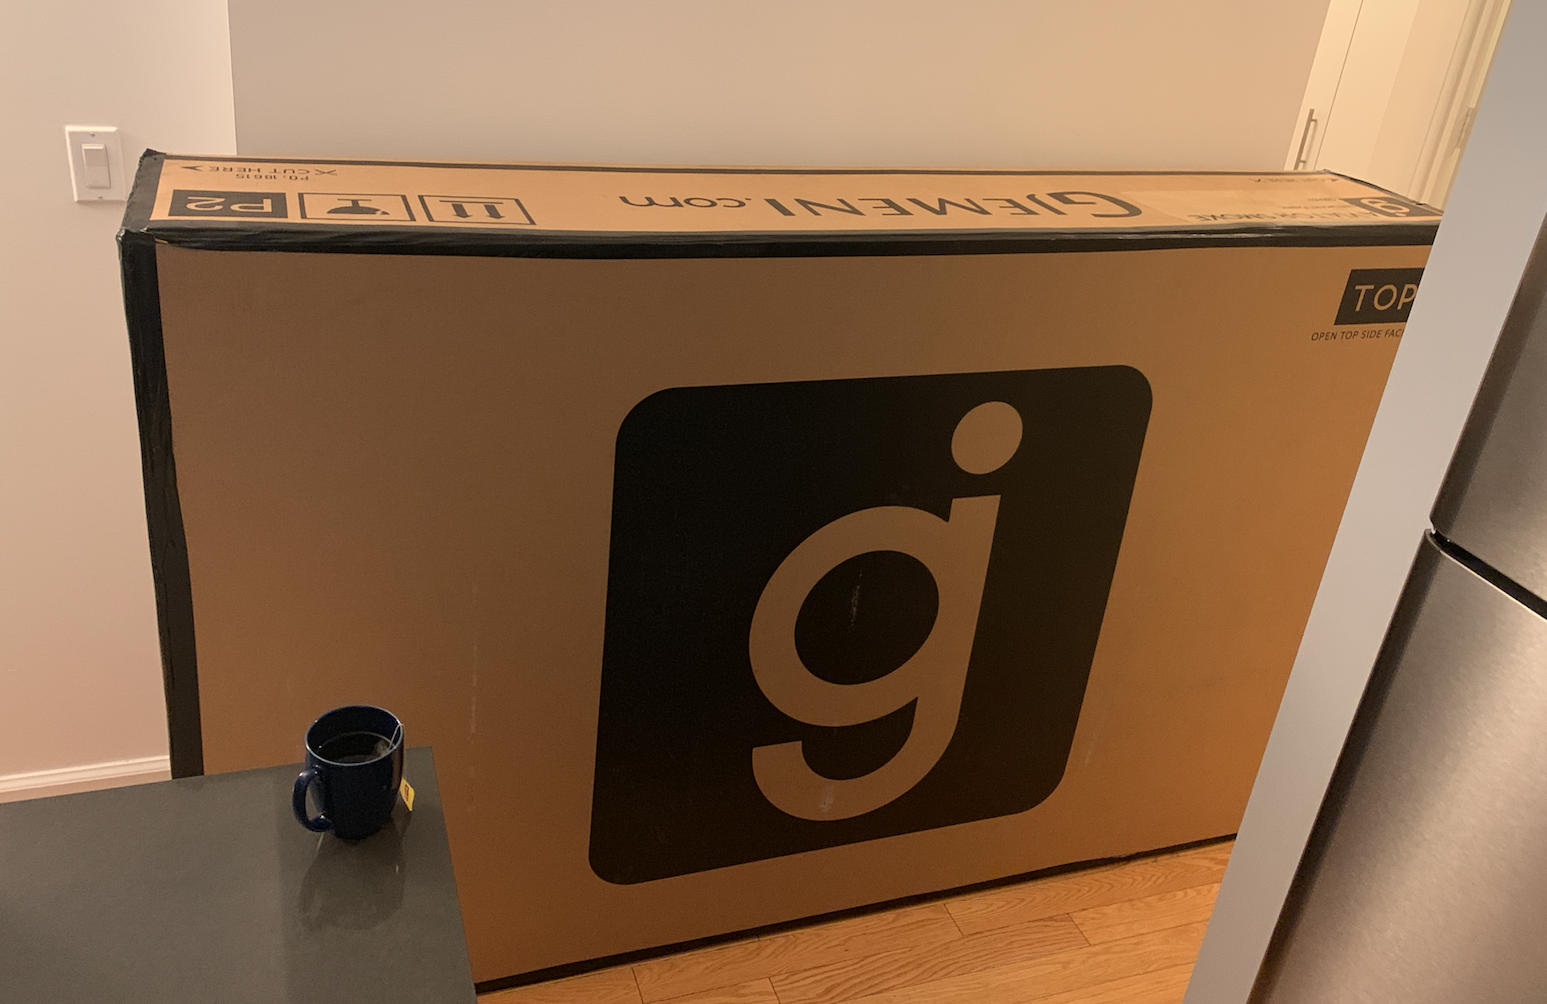 Test Driving Gjemeni S Couch In A Box Four Clicks And A